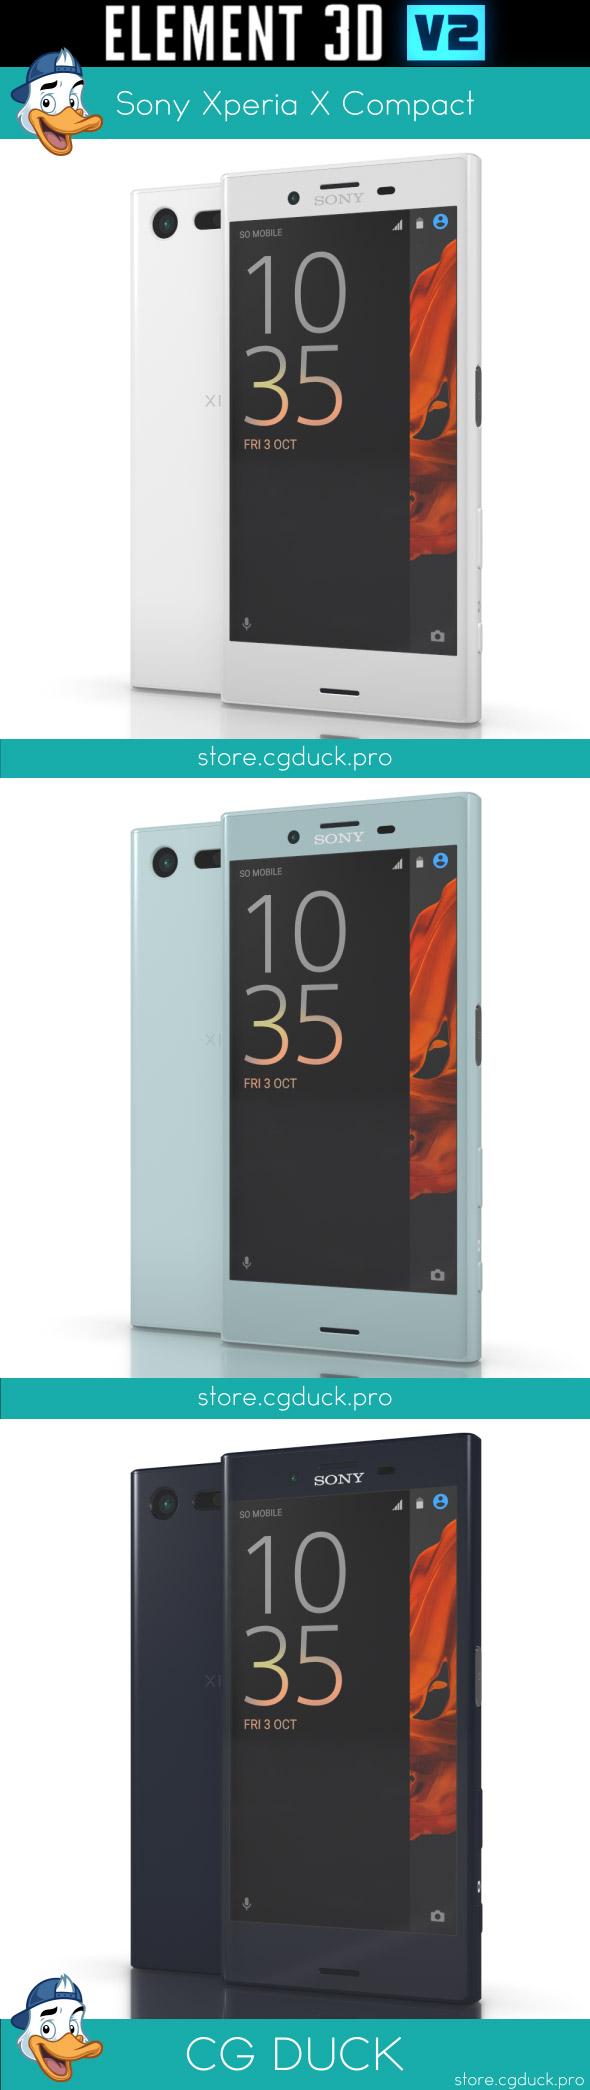 Sony Xperia X Compact for Element 3D - 3DOcean Item for Sale